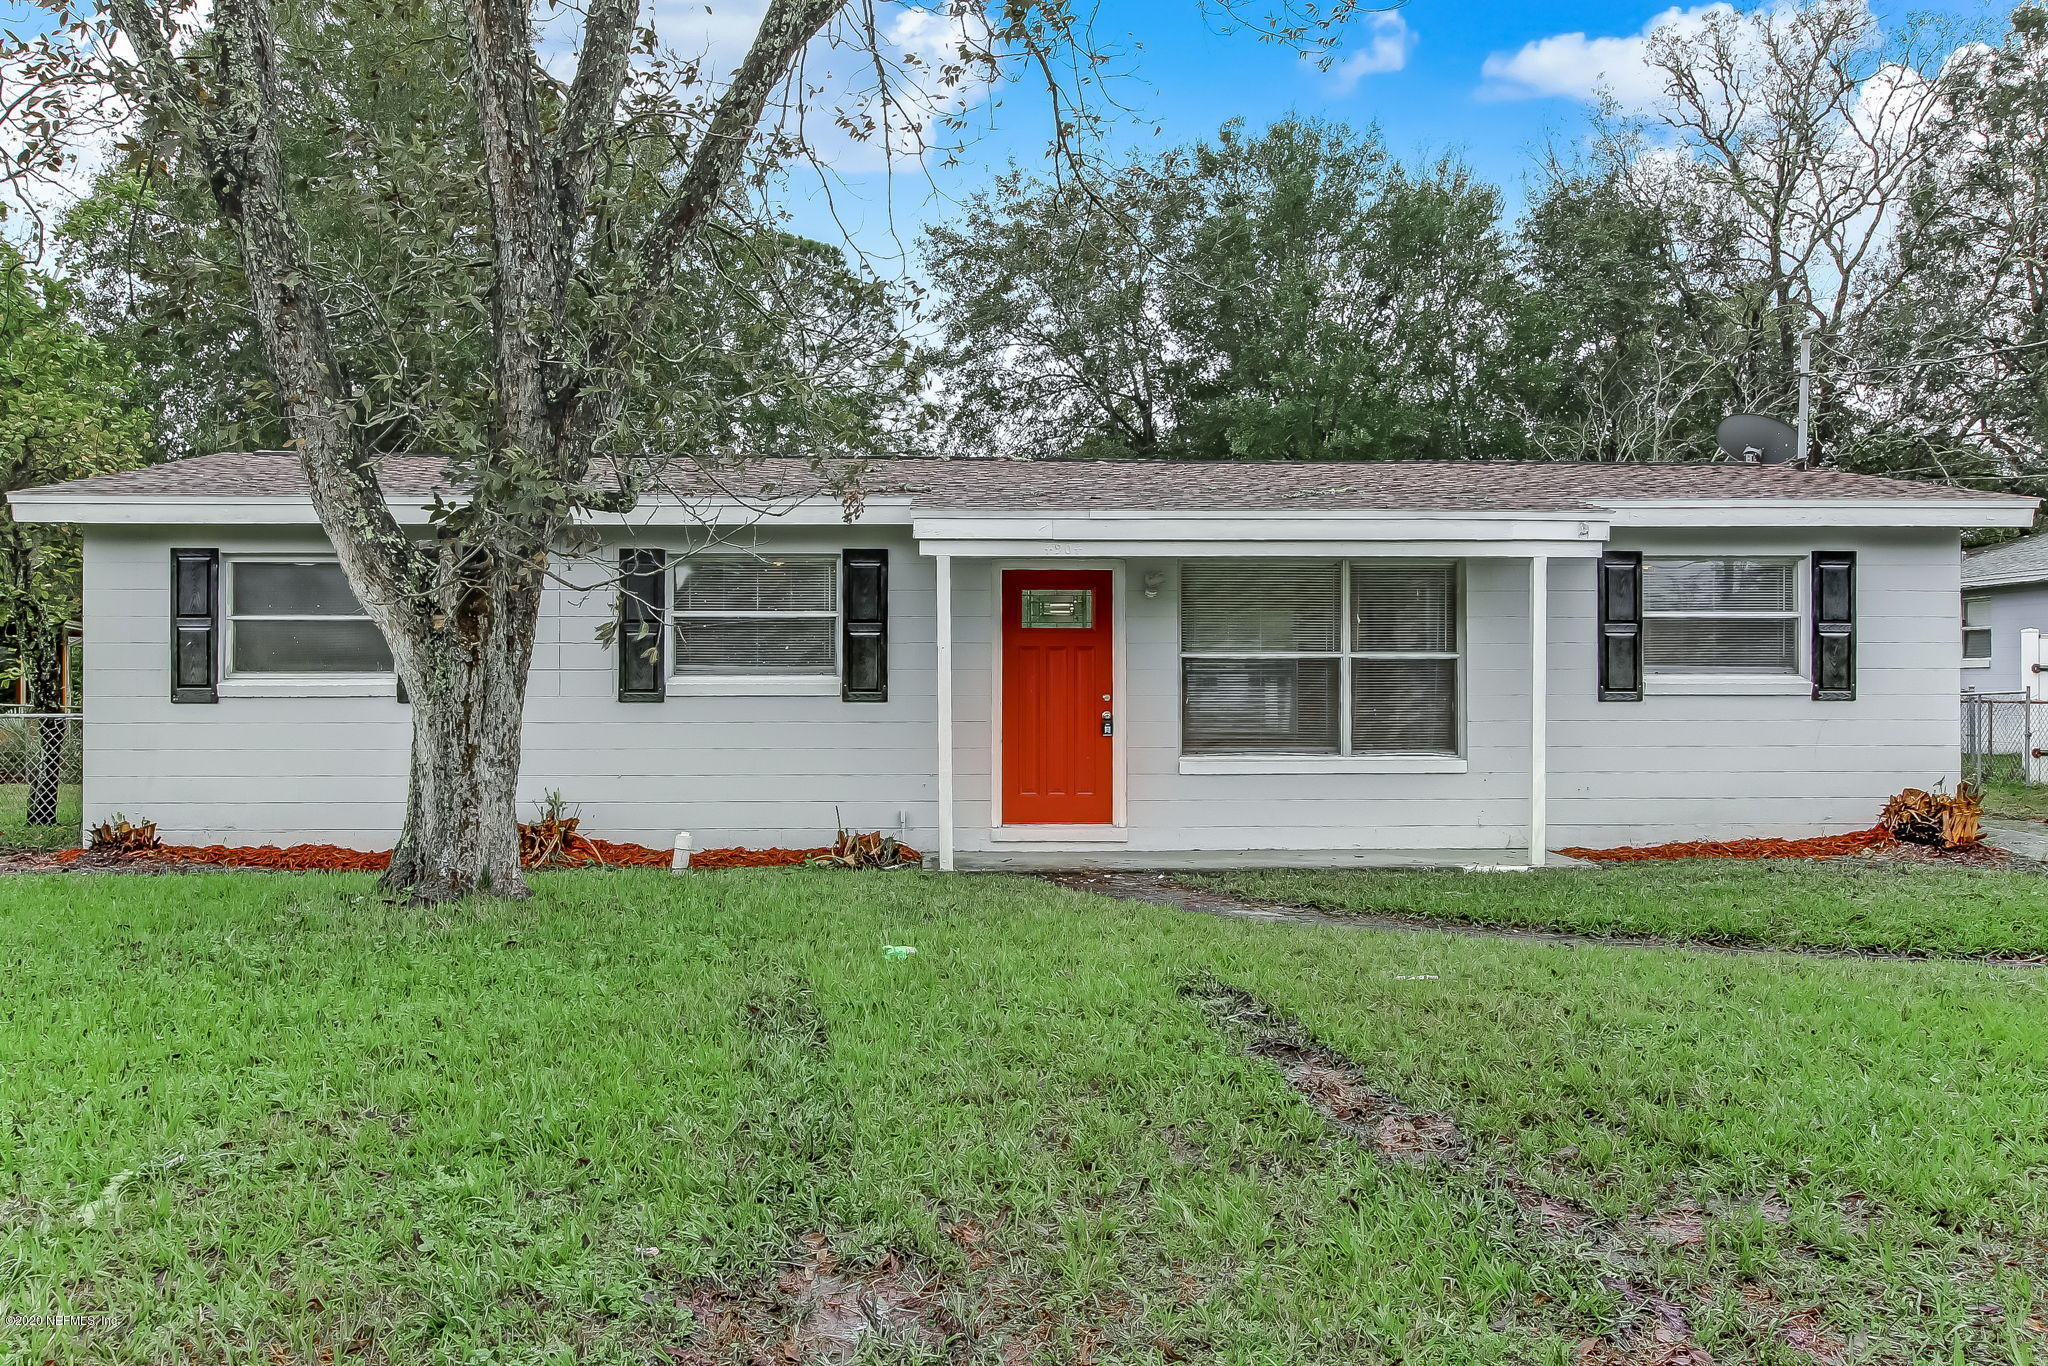 4904 DONCASTER, JACKSONVILLE, FLORIDA 32208, 4 Bedrooms Bedrooms, ,2 BathroomsBathrooms,Residential,For sale,DONCASTER,1082823